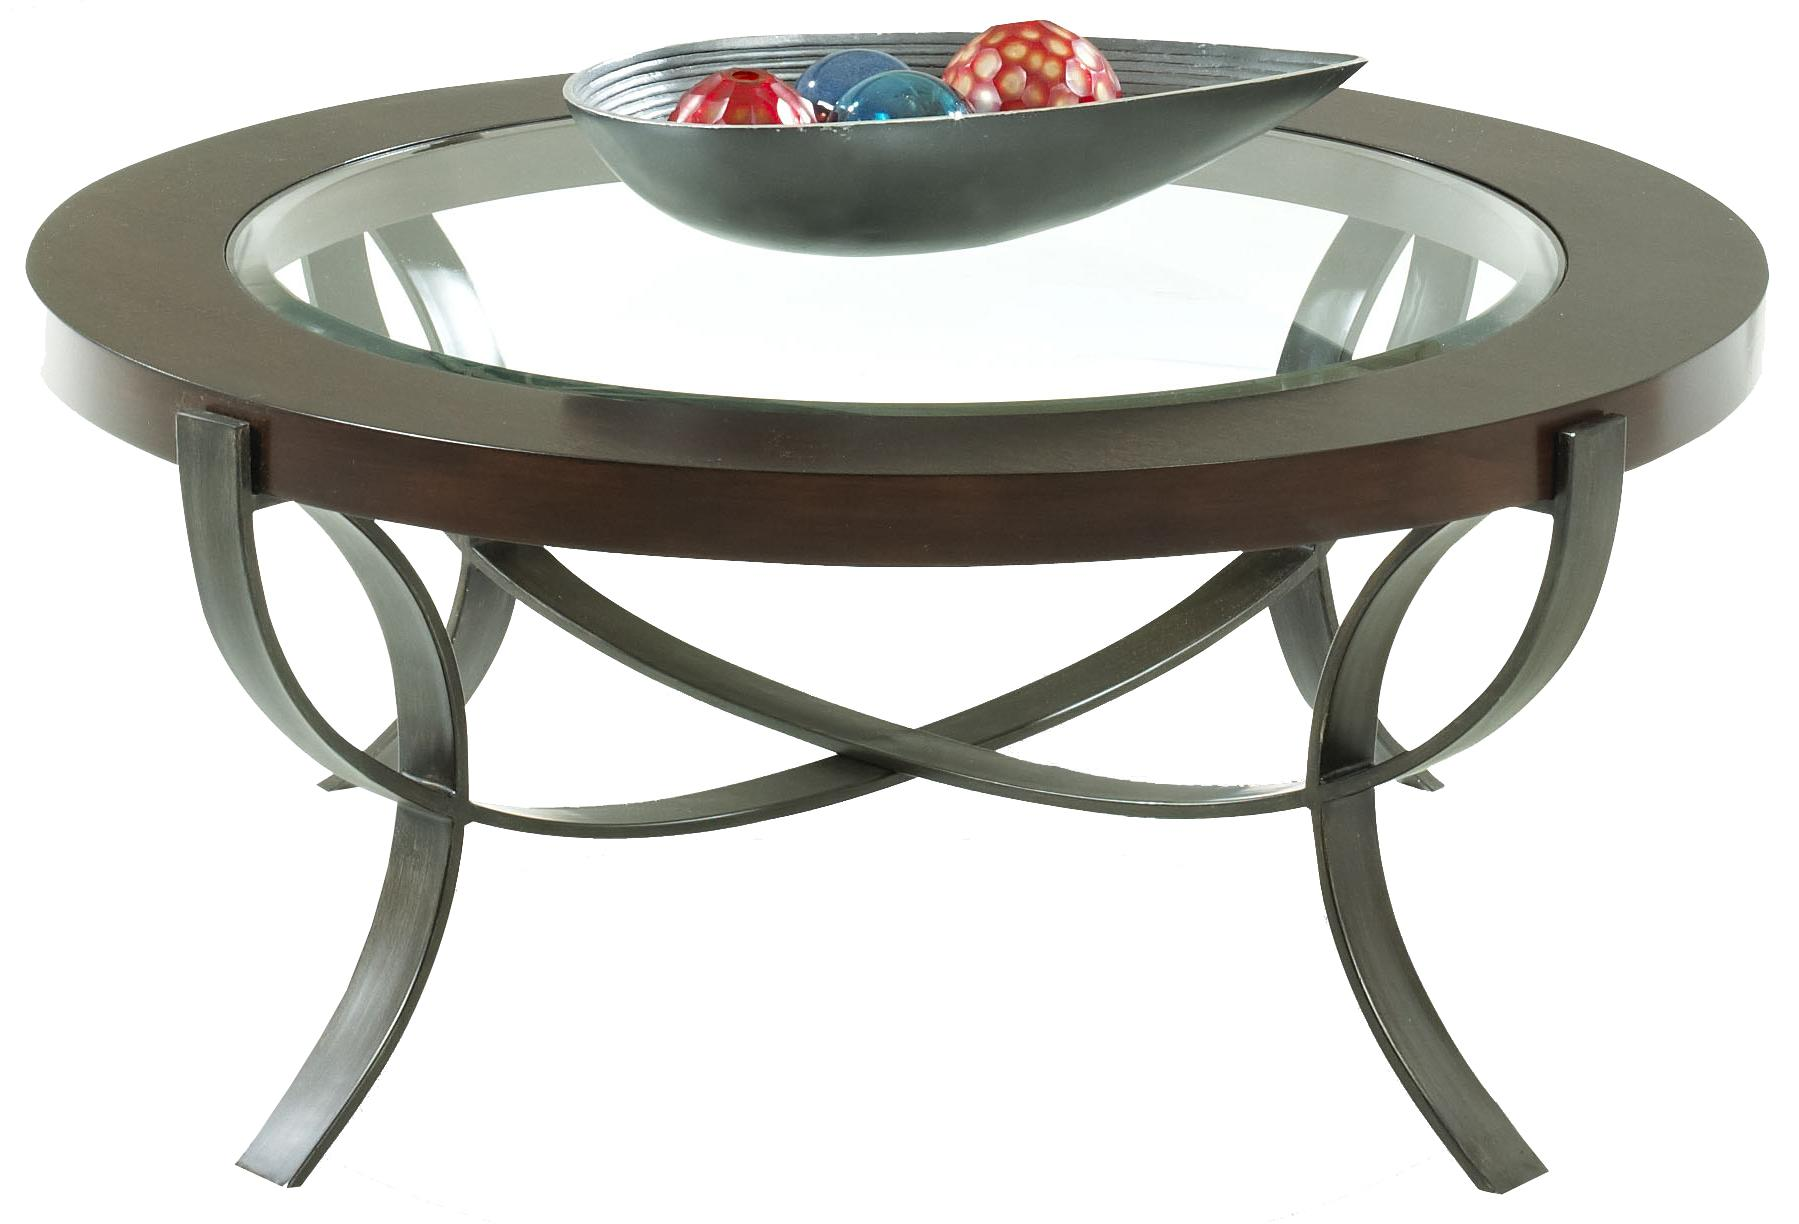 Morris Home Furnishings Sand Bridge Sand Bridge Cocktail Table - Item Number: 580-820